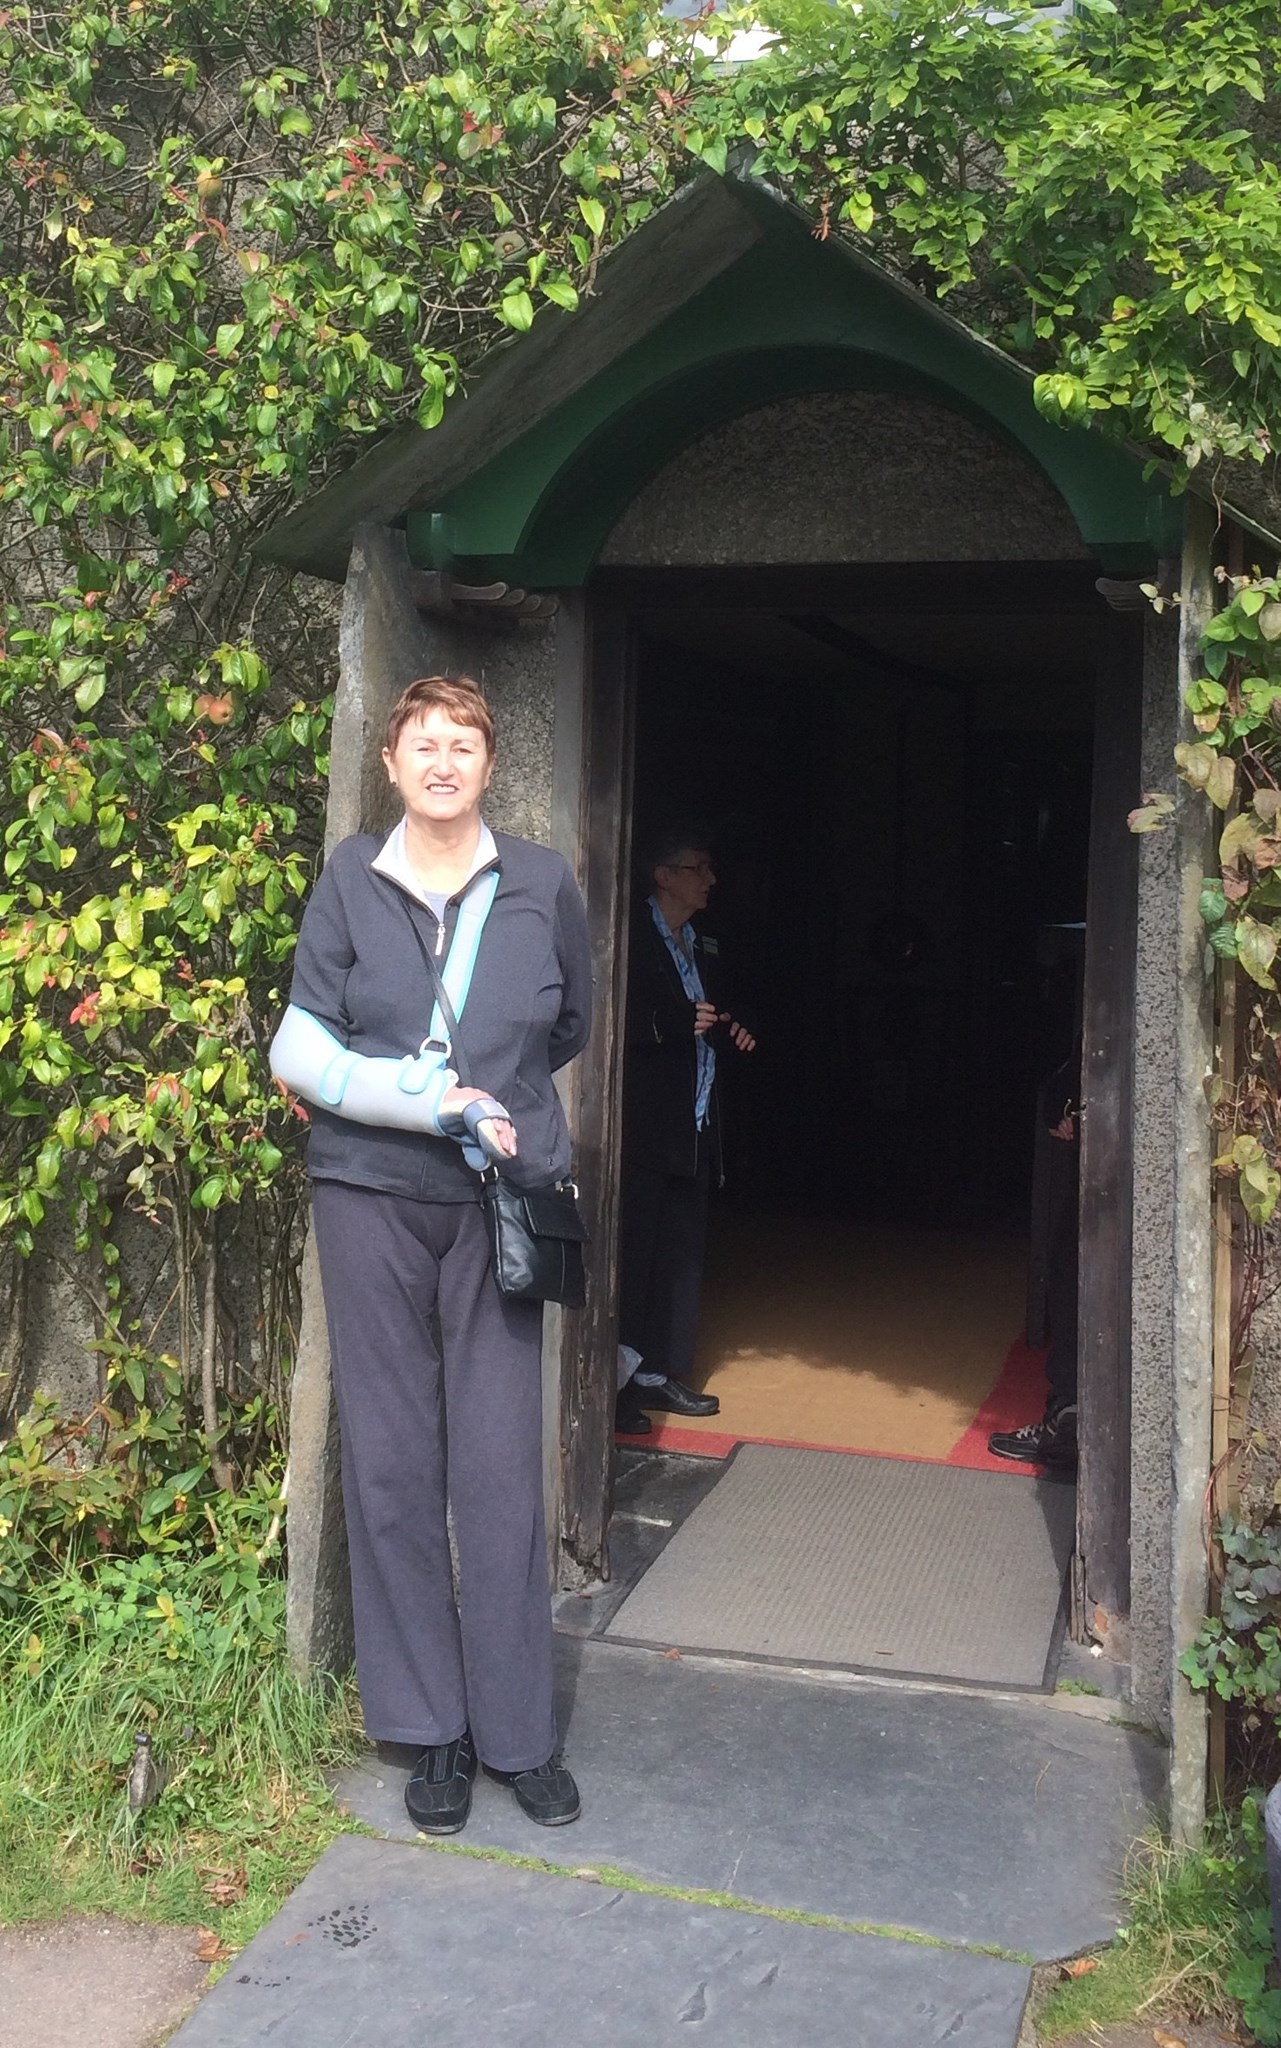 my princess posing in the doorway of Beatrix Potter's house last year